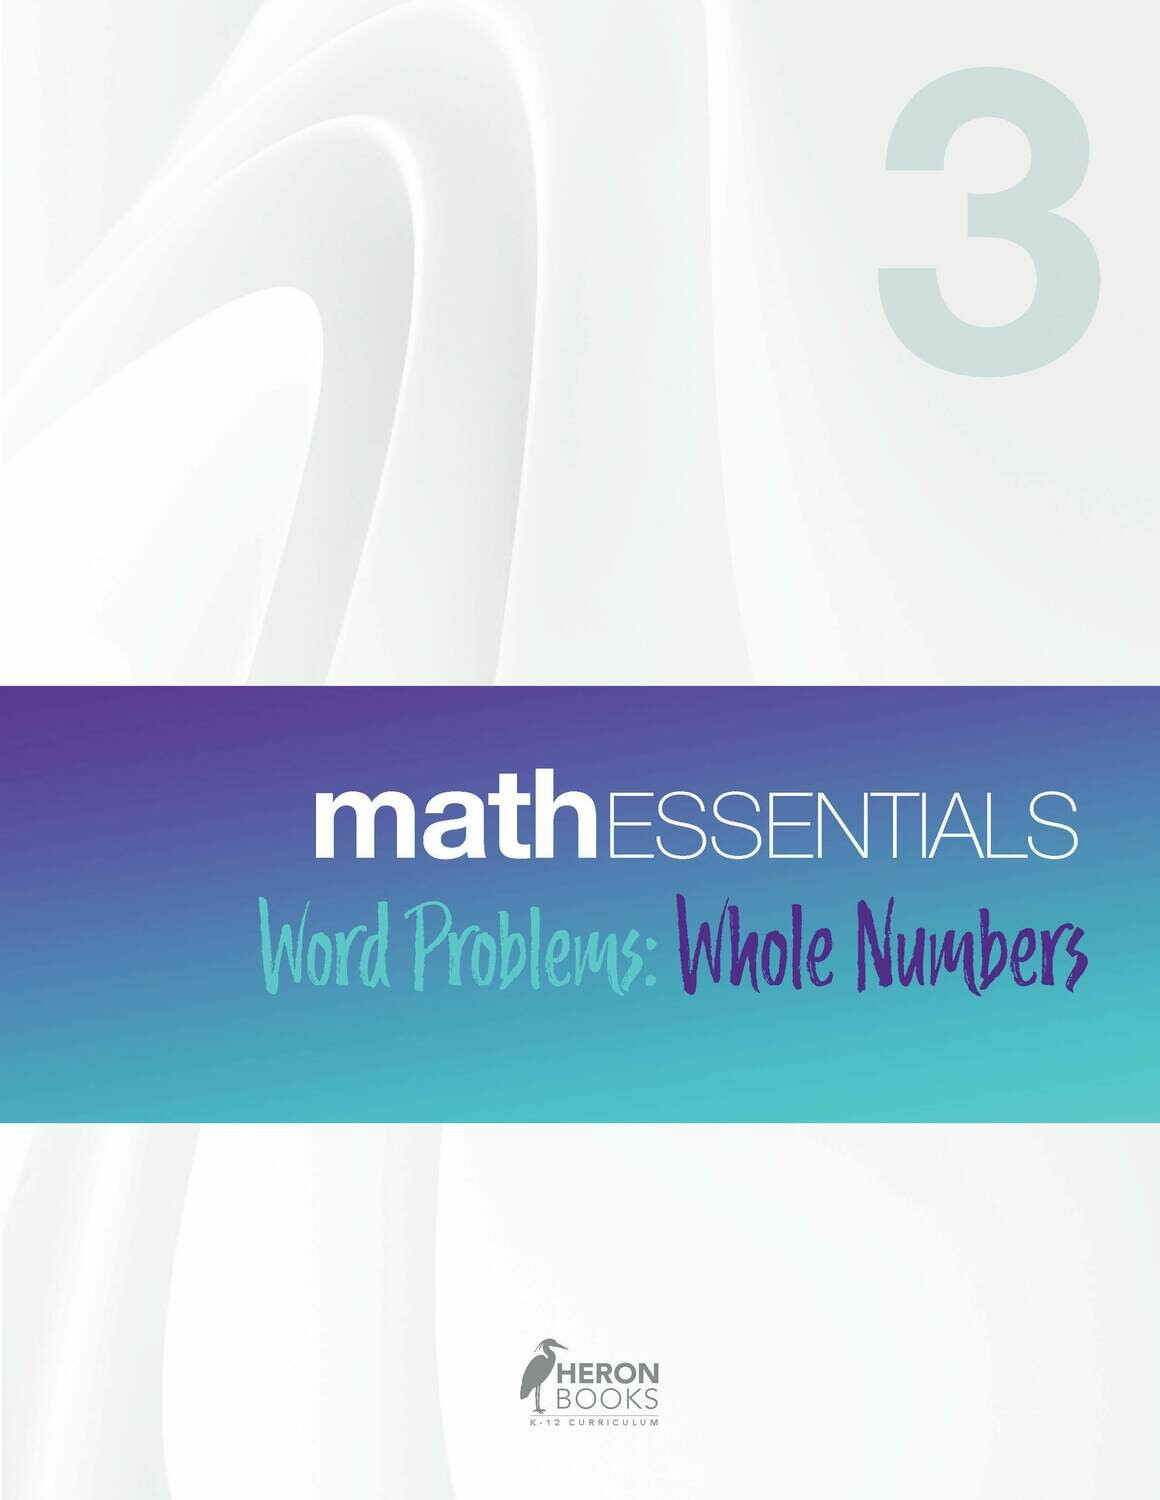 Math Essentials 3 – Word Problems: Whole Numbers - Free Download